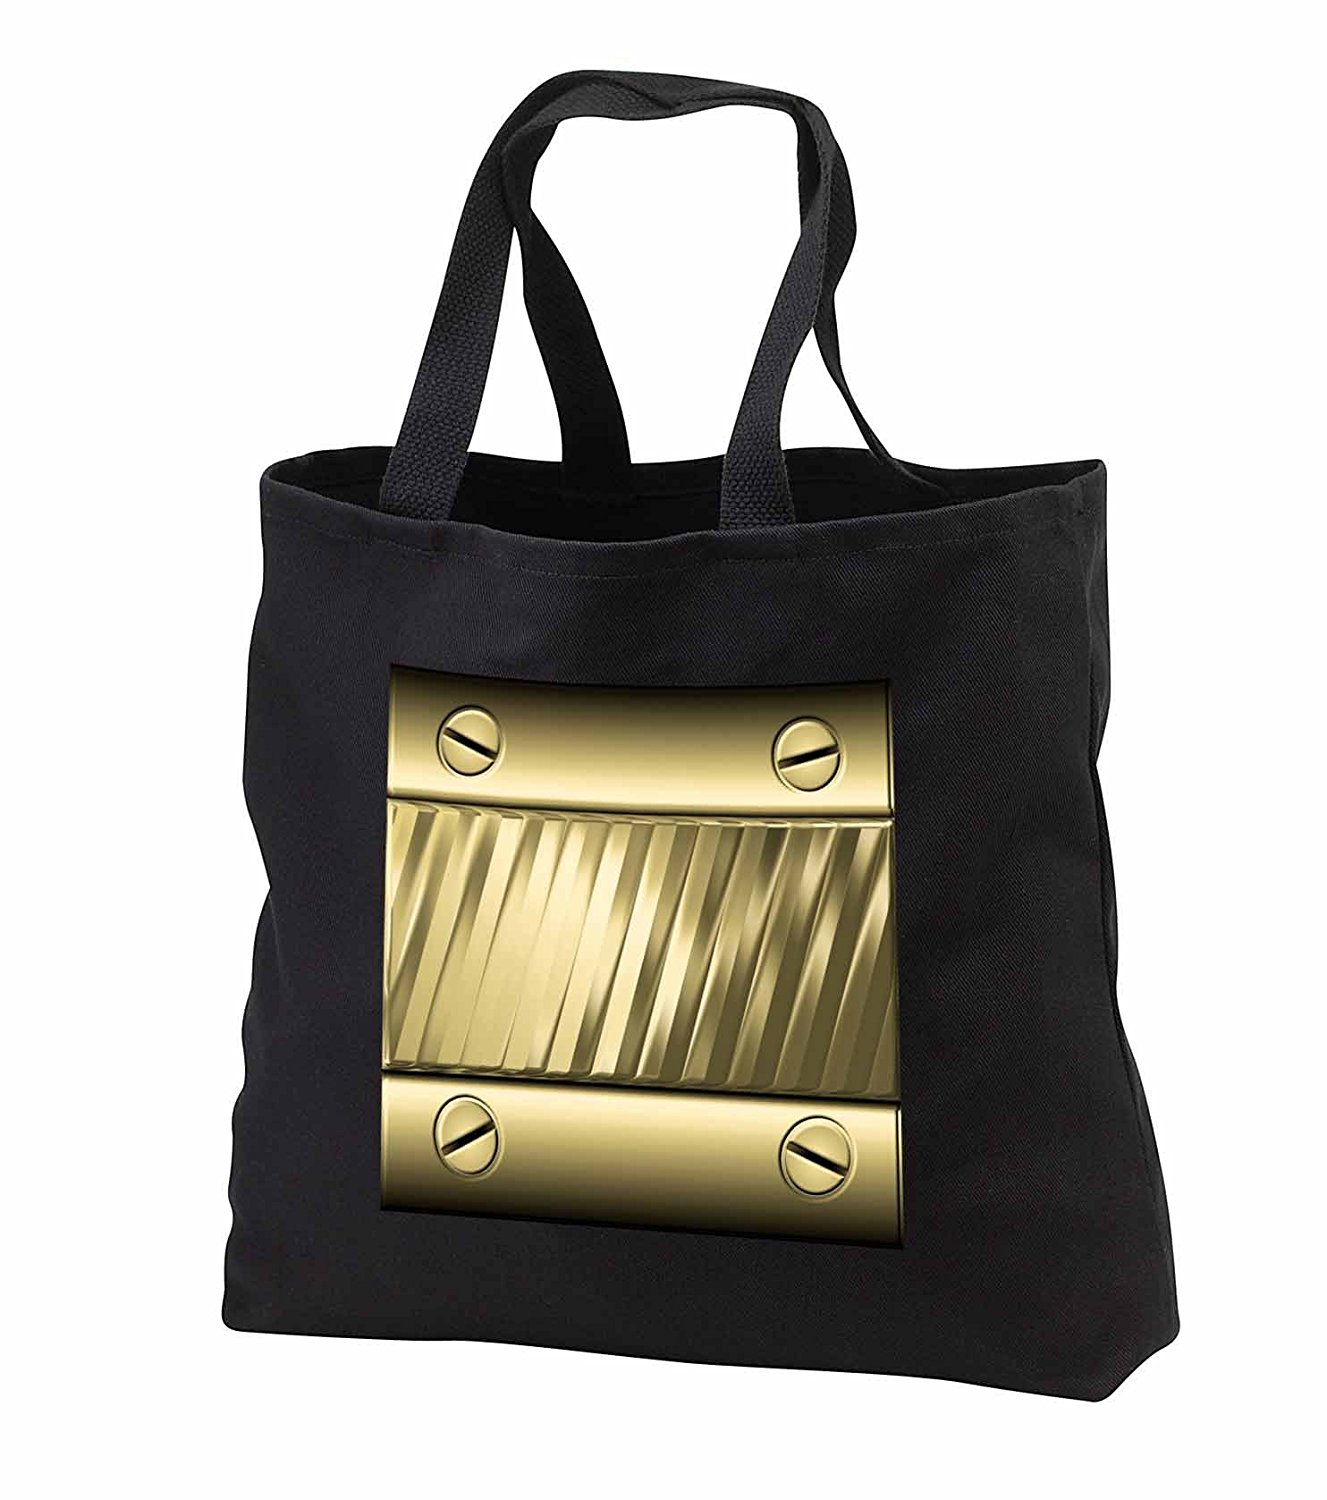 tb_242417 Charlyn Woodruff - CW Designs Faux Metal - Cool Faux Gold Tone Metal Plate with Screws Image - Tote Bags